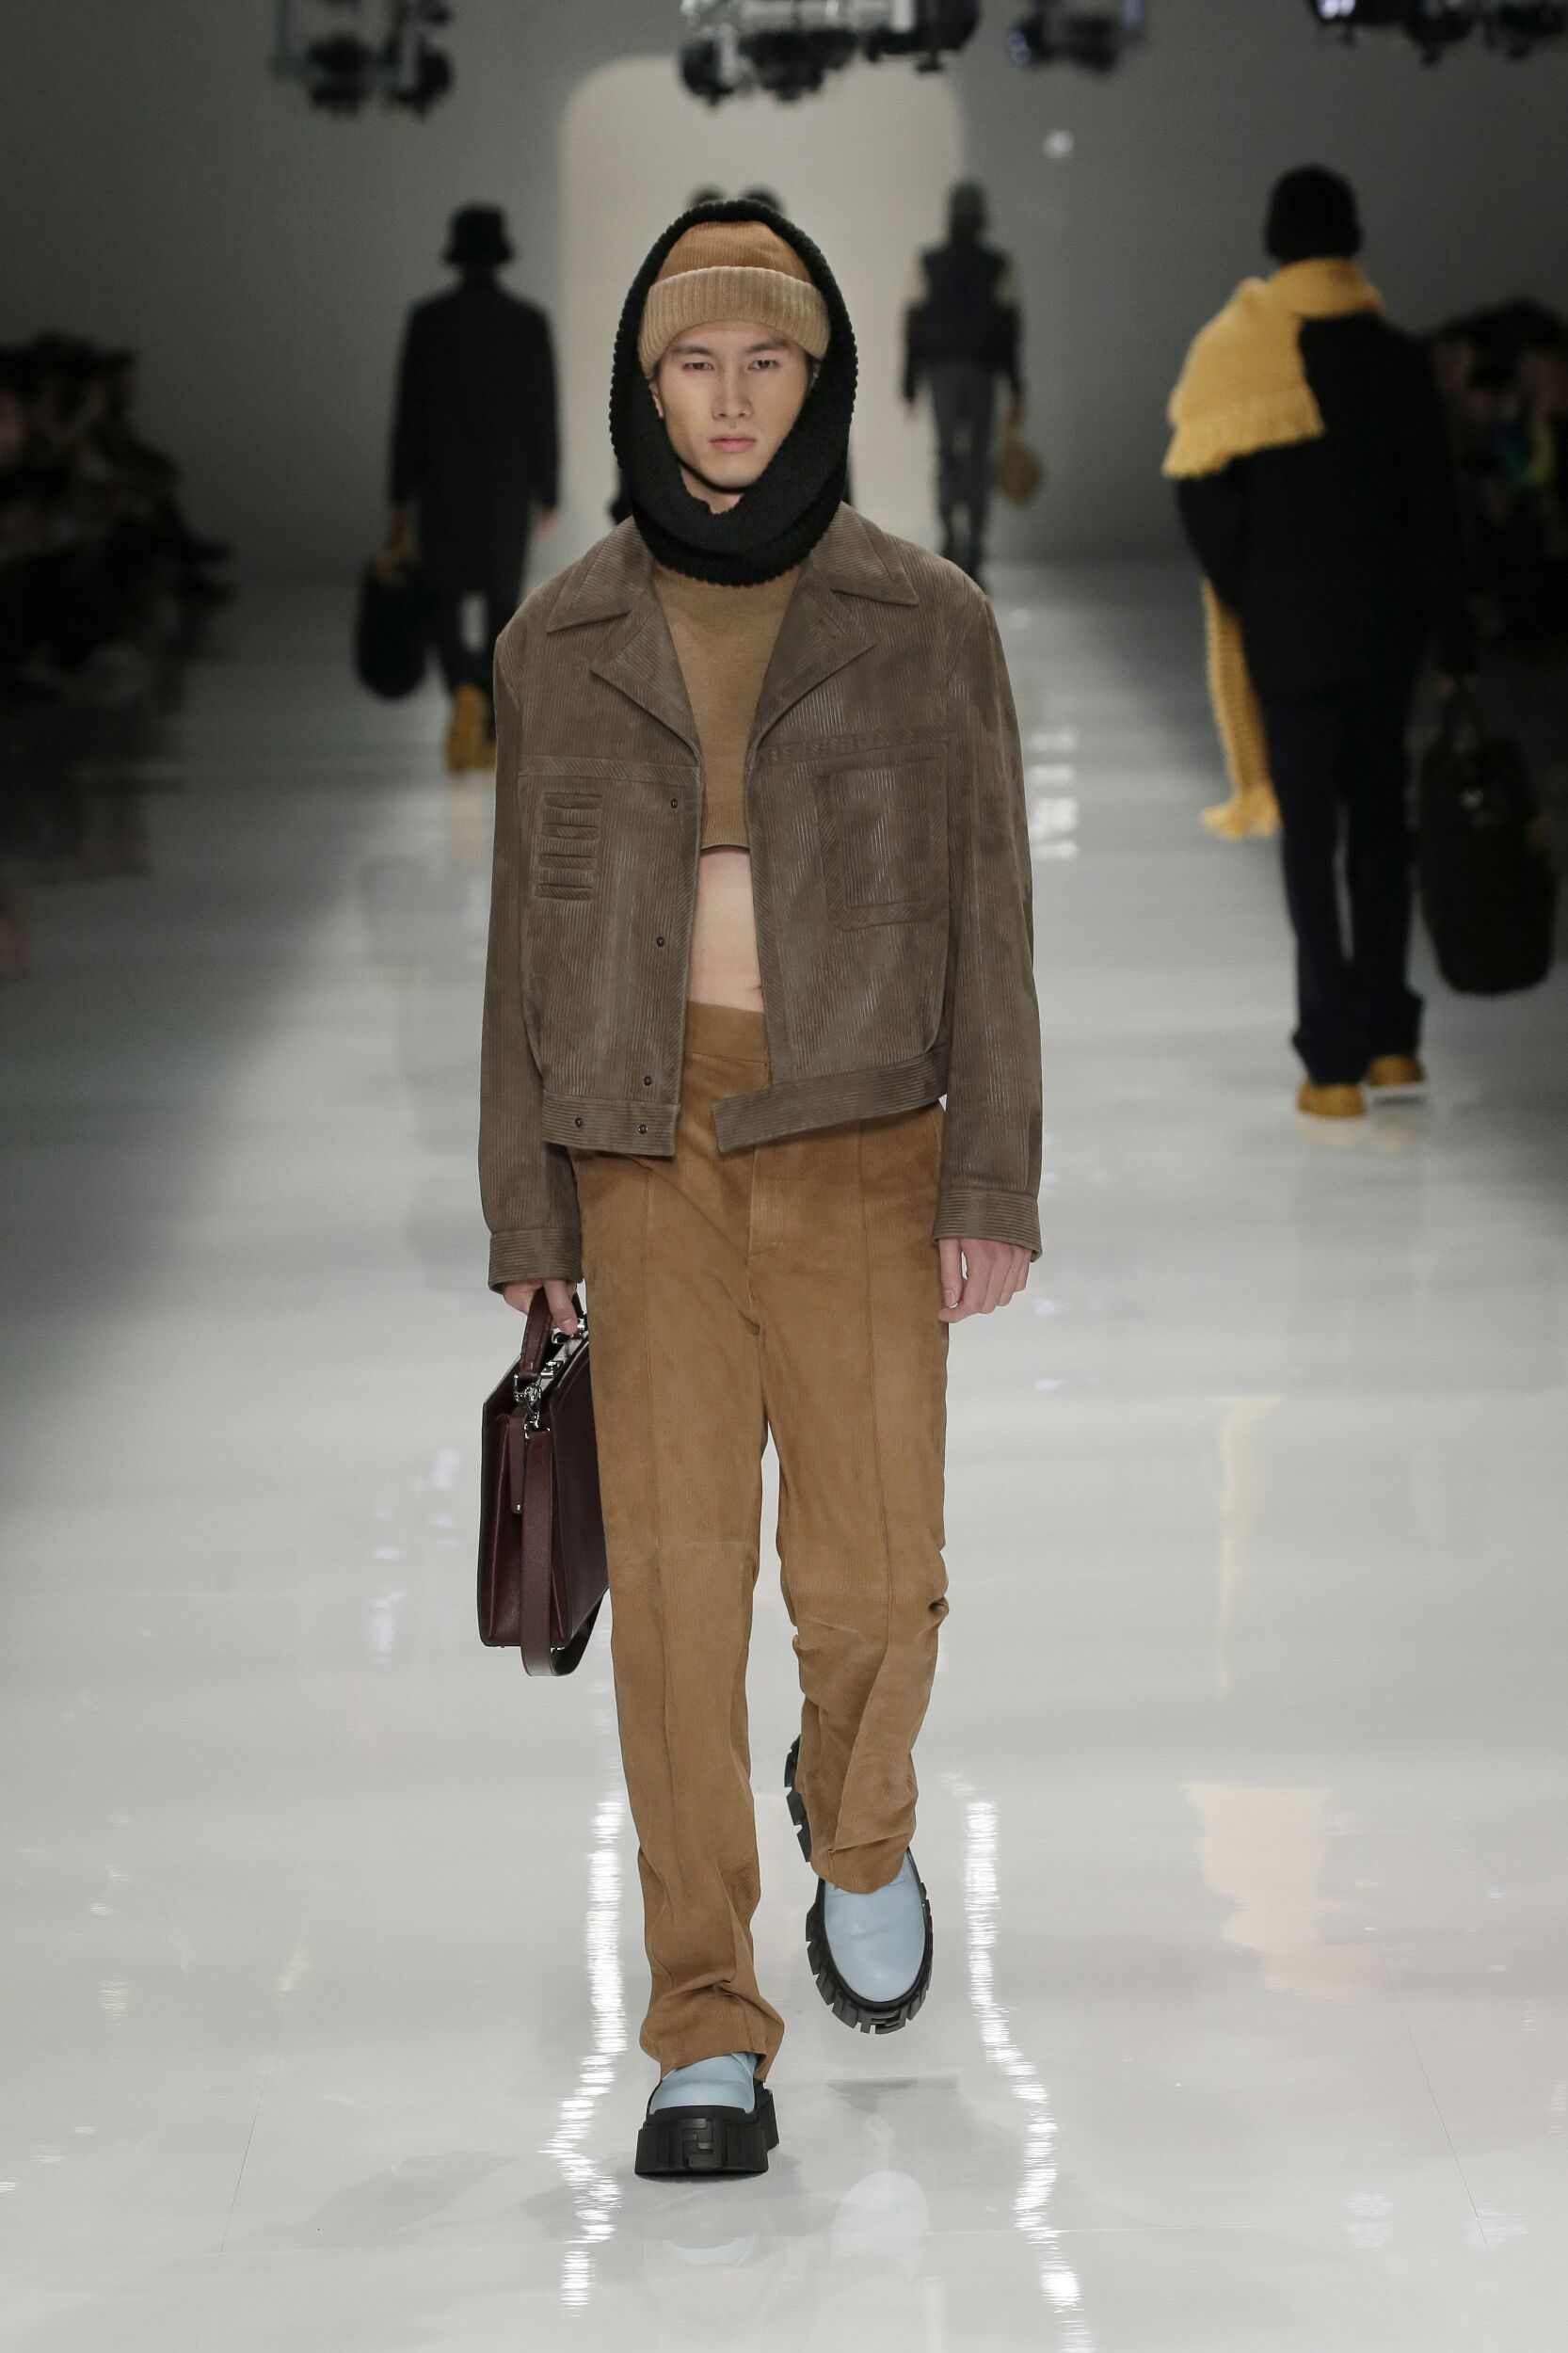 Fendi Menswear Fashion Show